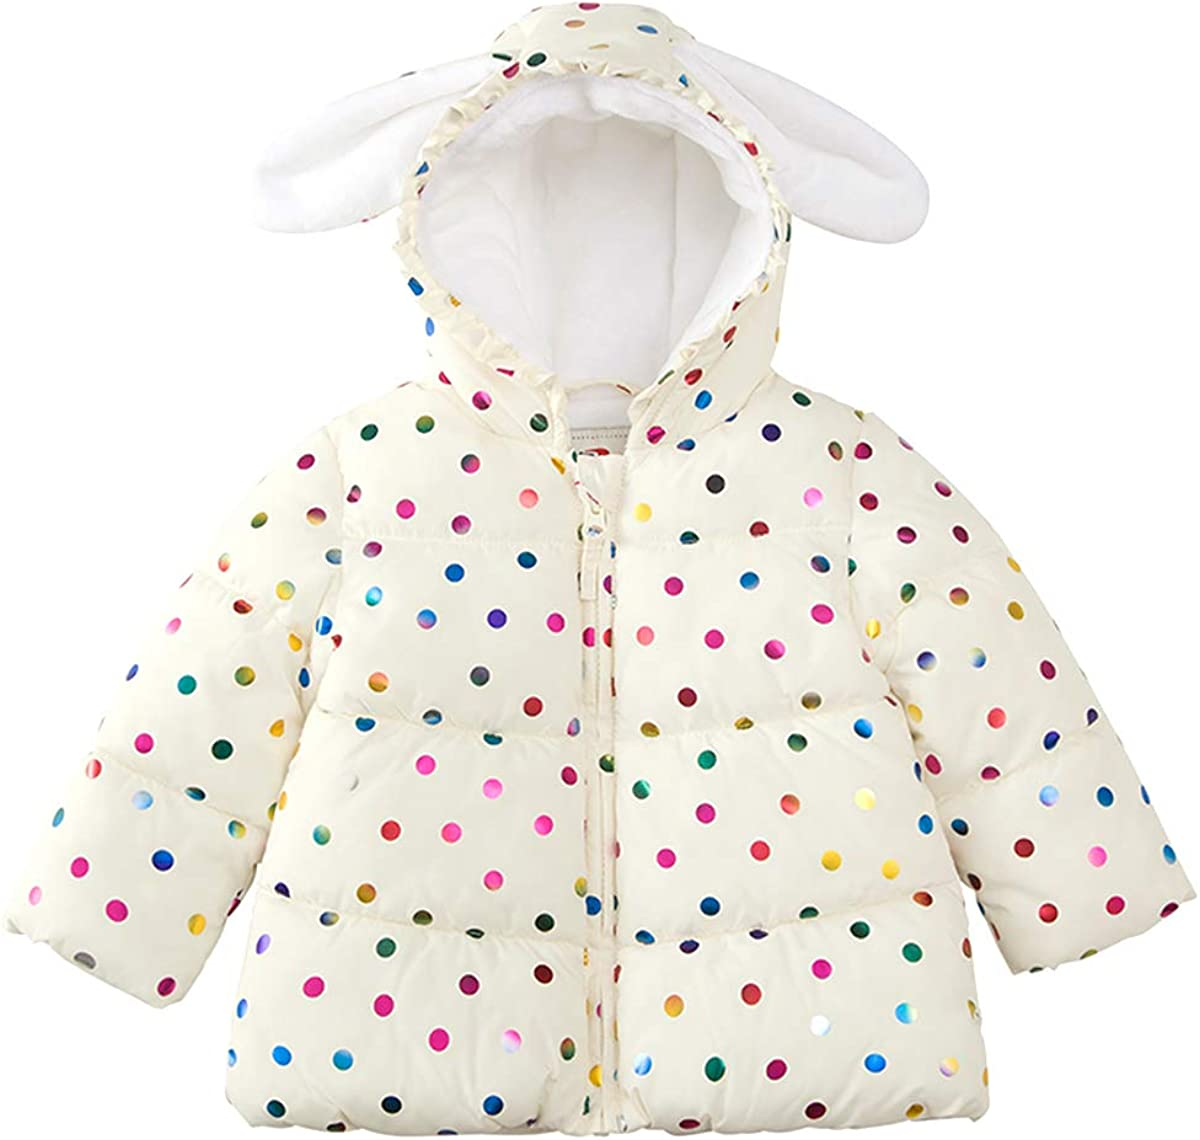 RokkaRolla Baby Girls' OFFicial store Water-Resistant Soft Fur Lined Mini Sale special price Puff